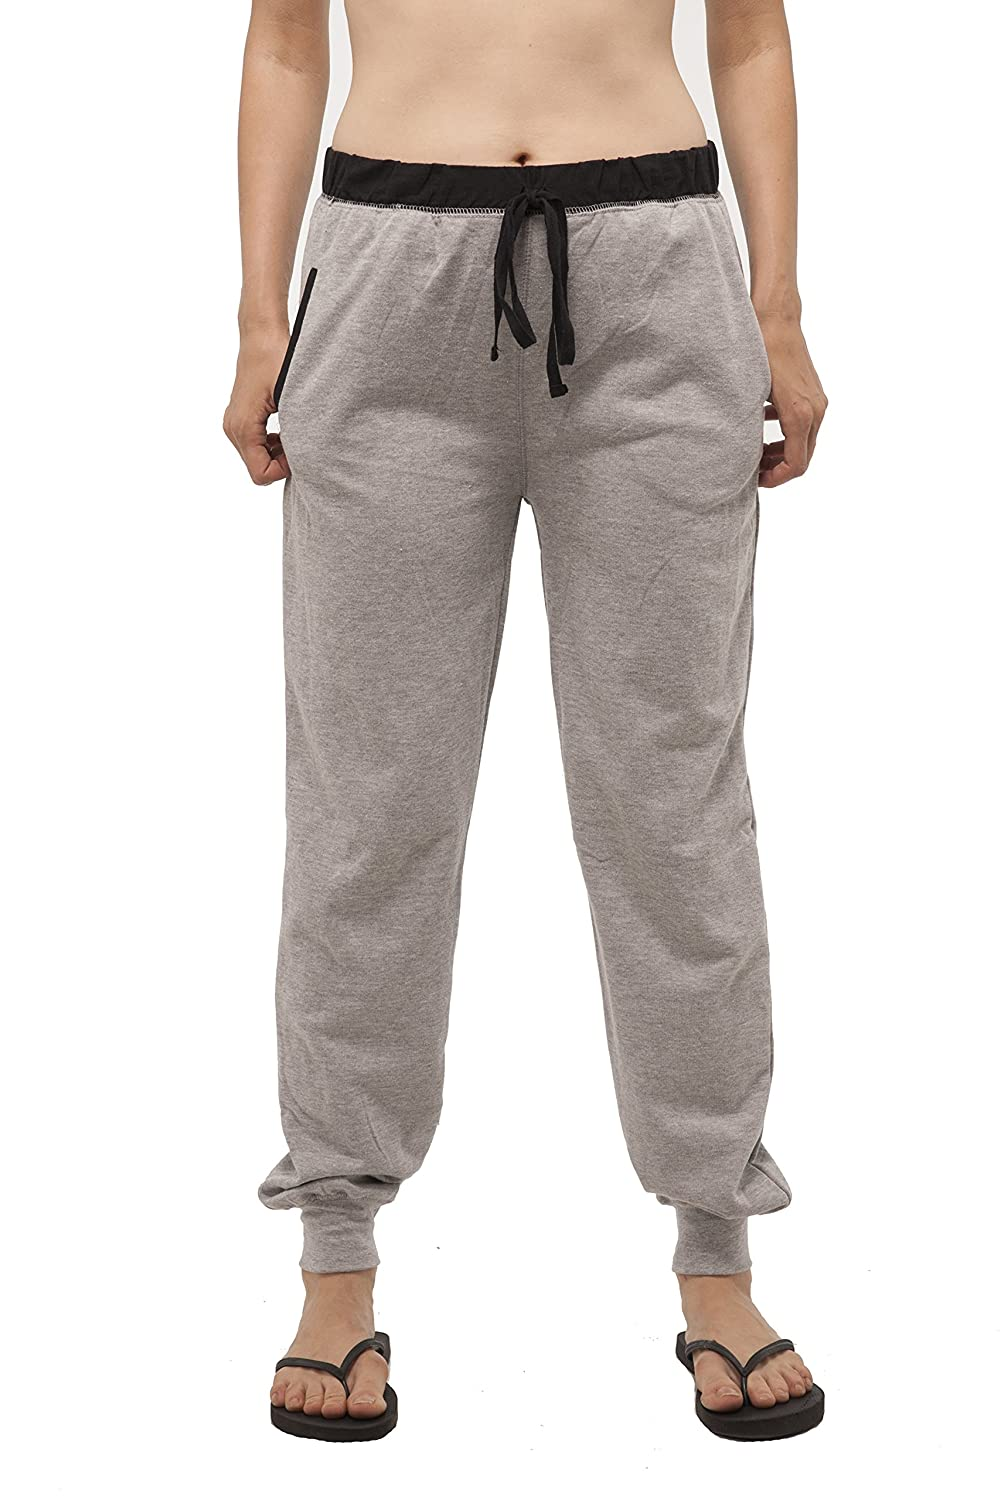 Hollywood Star Fashion Full length french terry jogger with front pockets